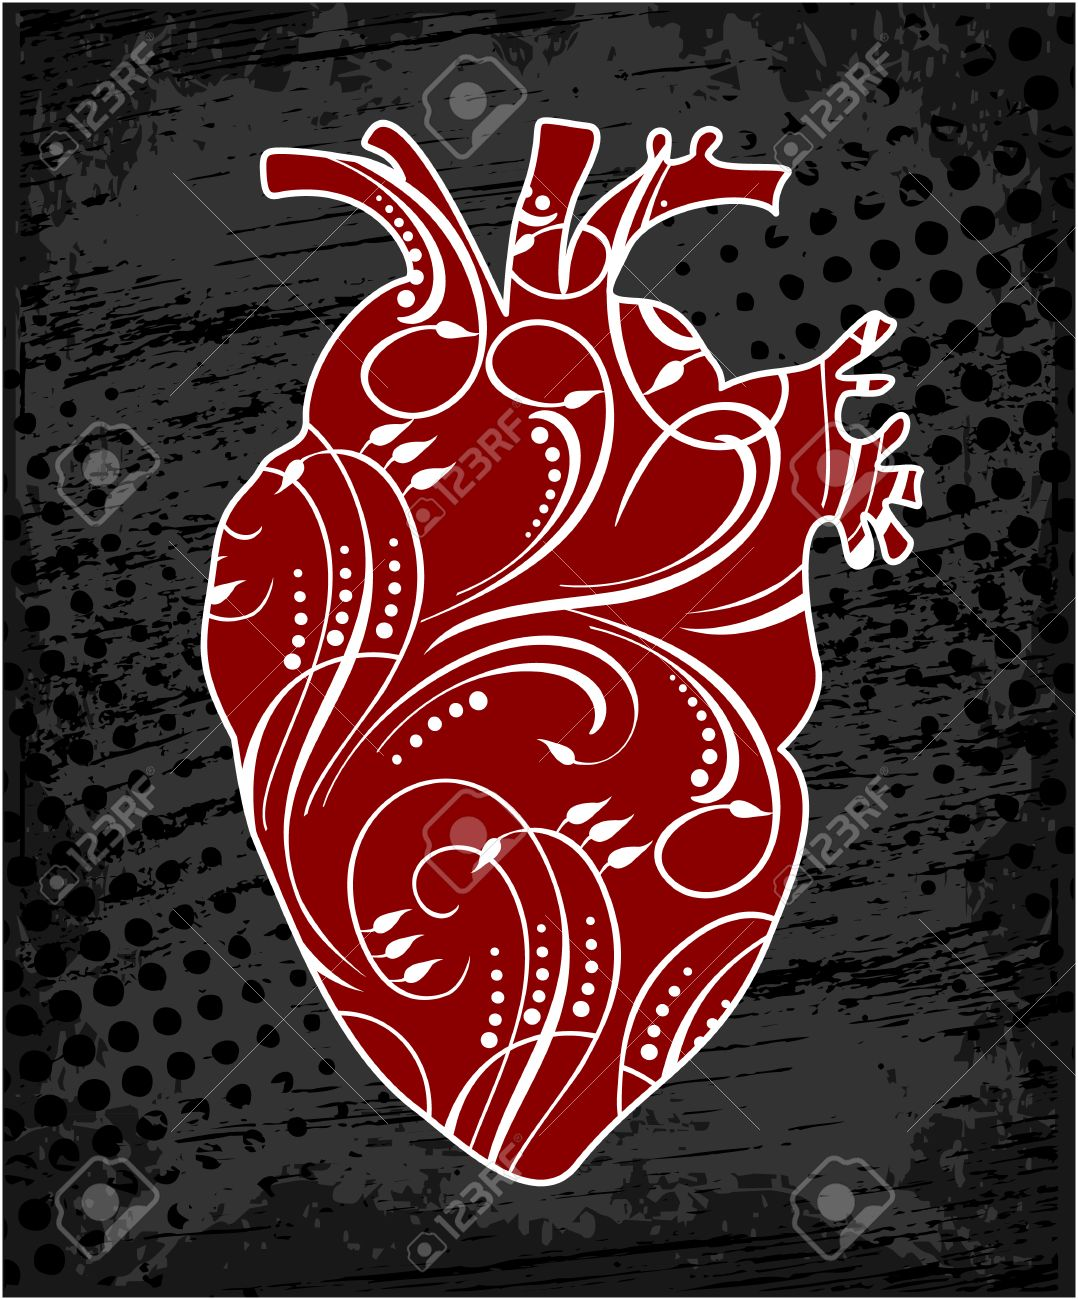 1078x1300 Anatomical Human Heart, Drawing In Cartoon Style. Realistic Red